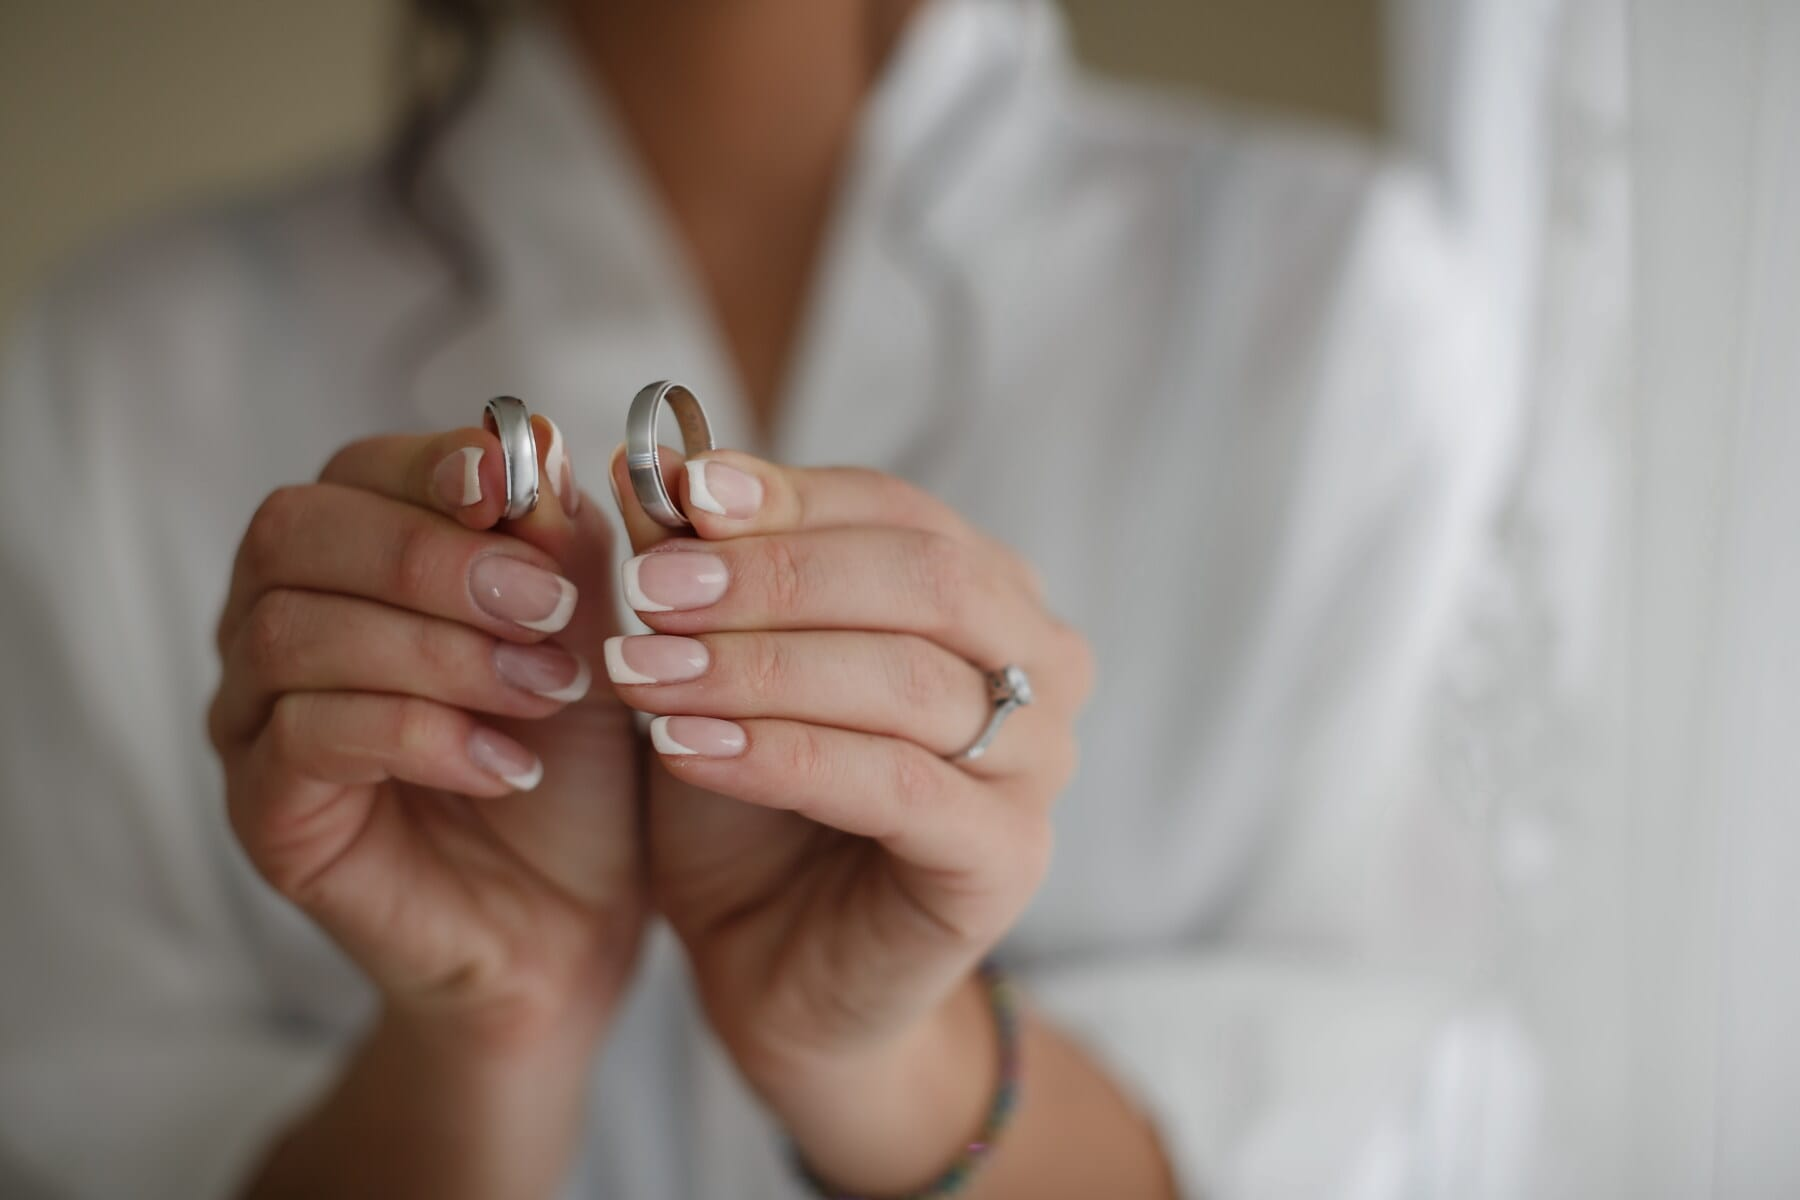 woman, wedding ring, holding, nail polish, close-up, manicure, finger, rings, skin, hand